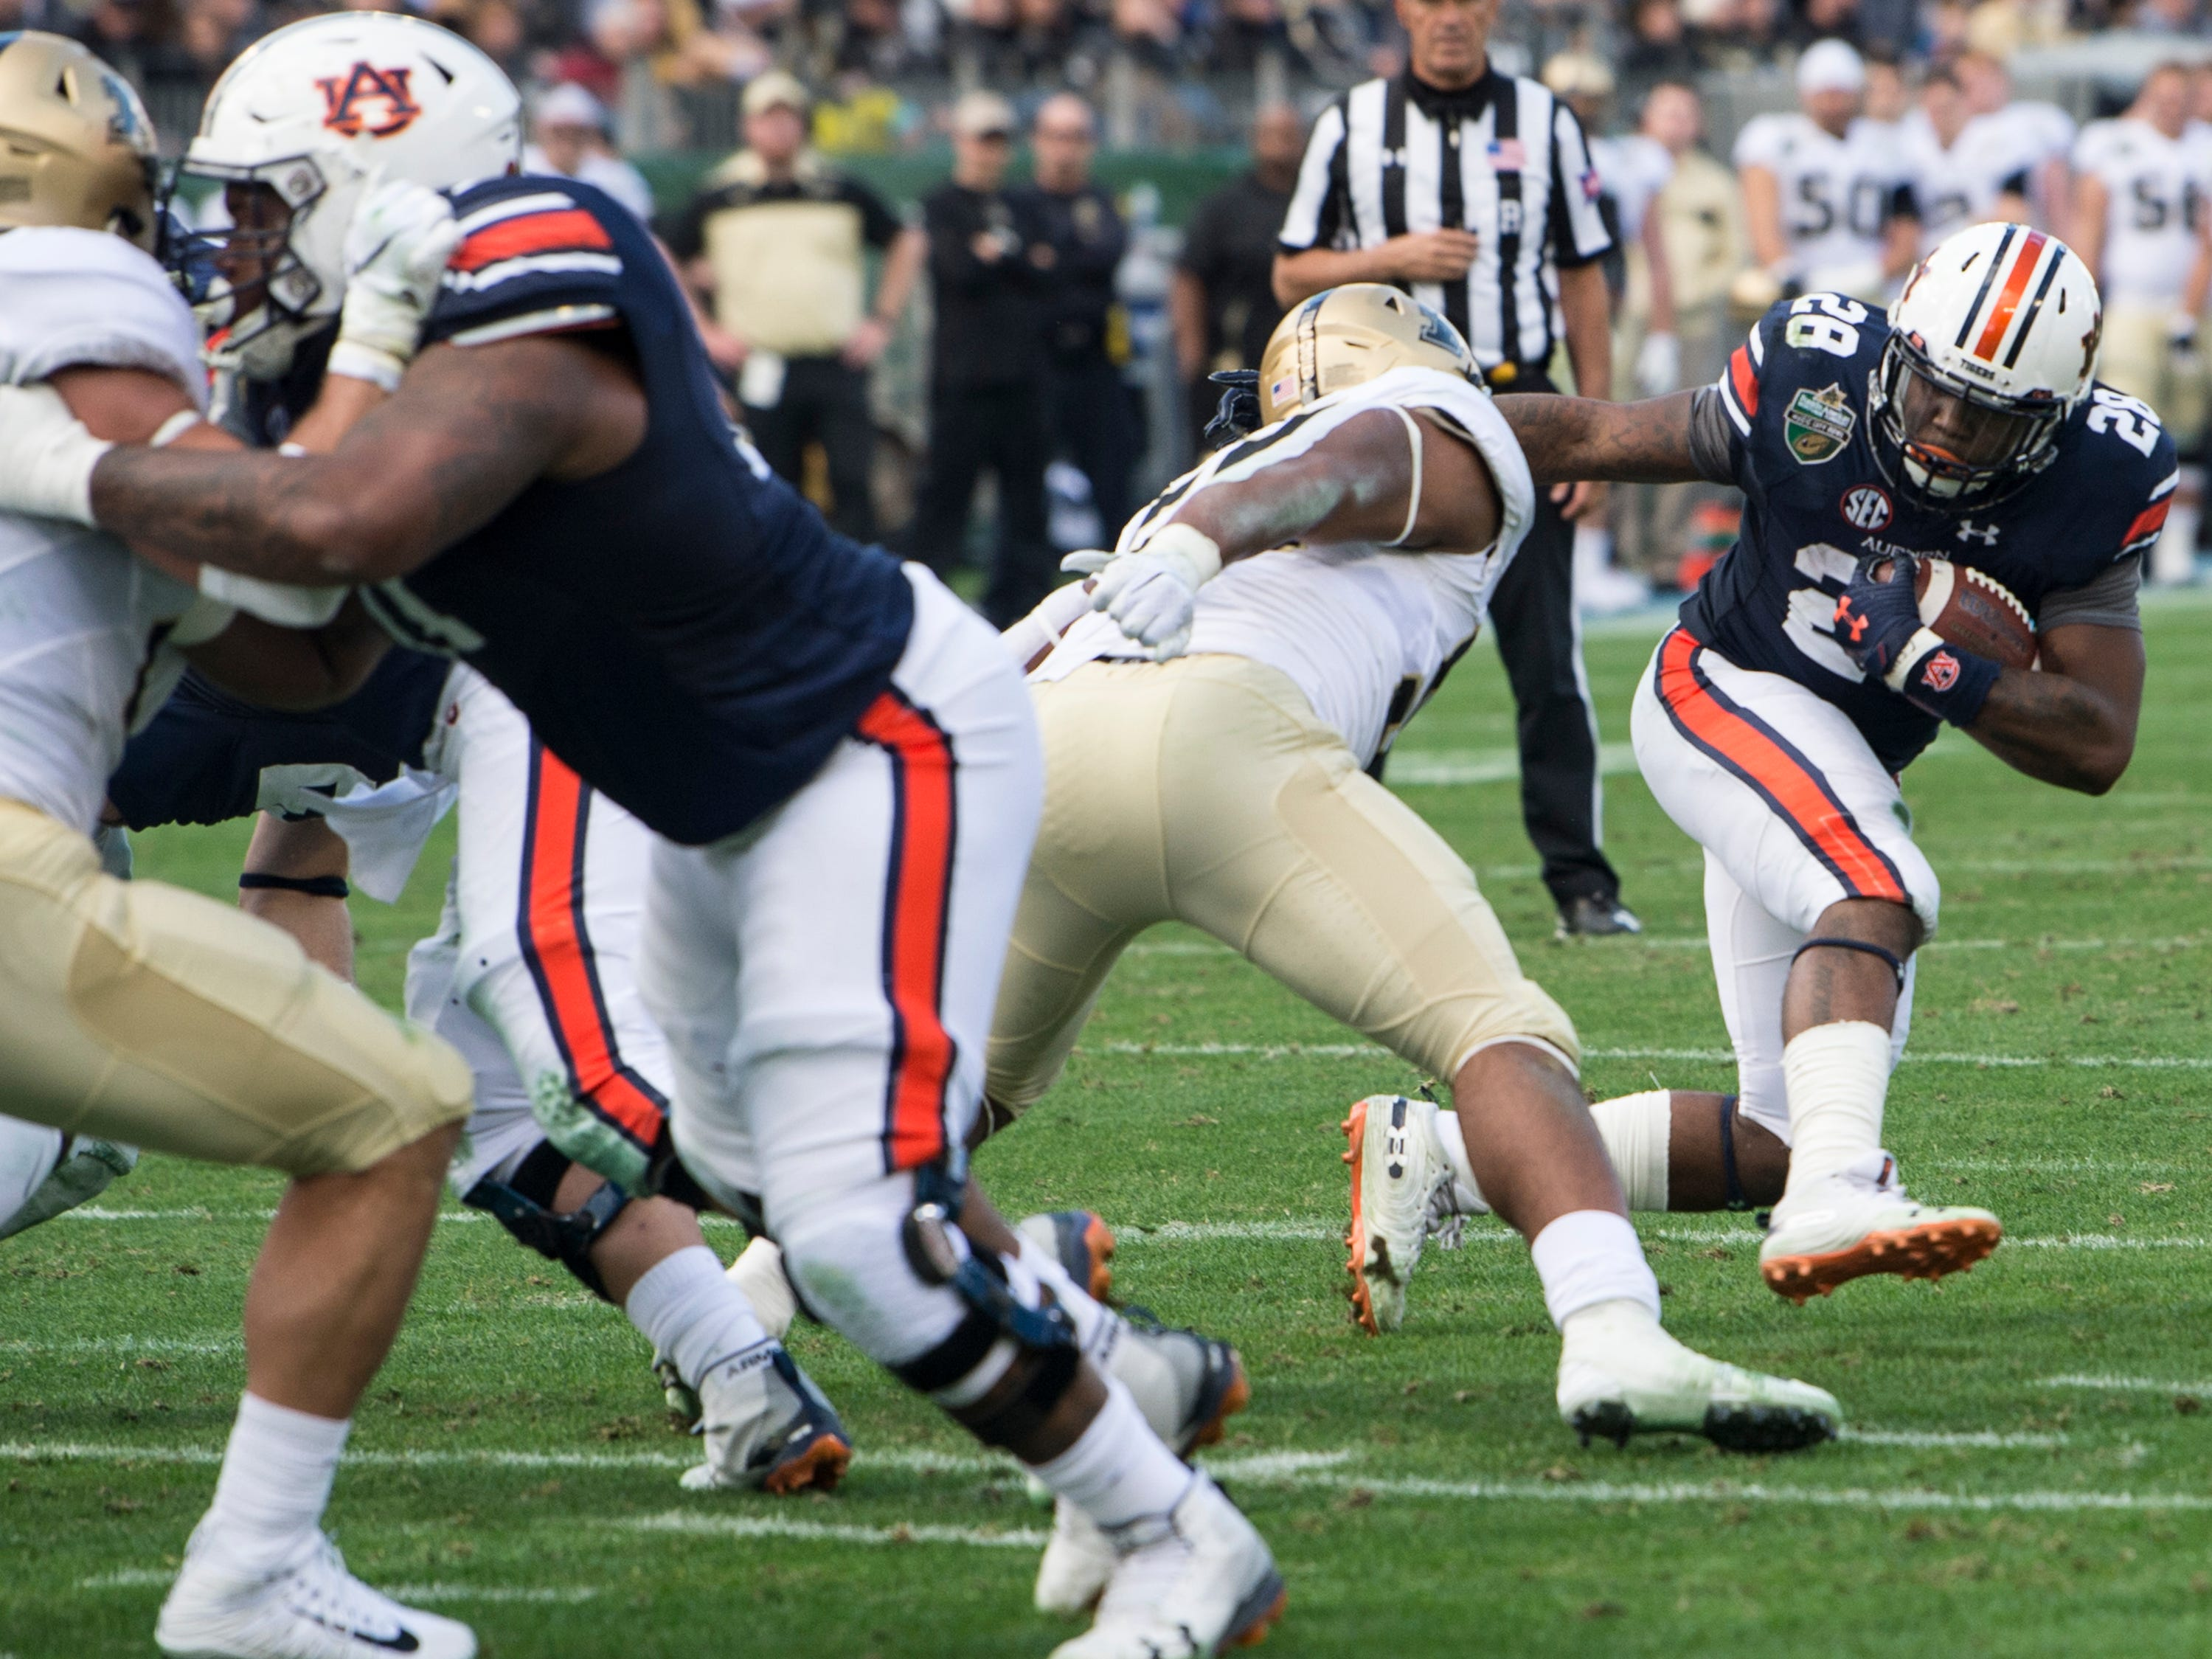 Auburn running back JaTarvious Whitlow (28) is stopped in the backfield by Purdue linebacker Derrick Barnes (55) during the Music City Bowl at Nissan Stadium in Nashville, Tenn., on Friday, Dec. 28, 2018. Auburn defeated Purdue 63-14.